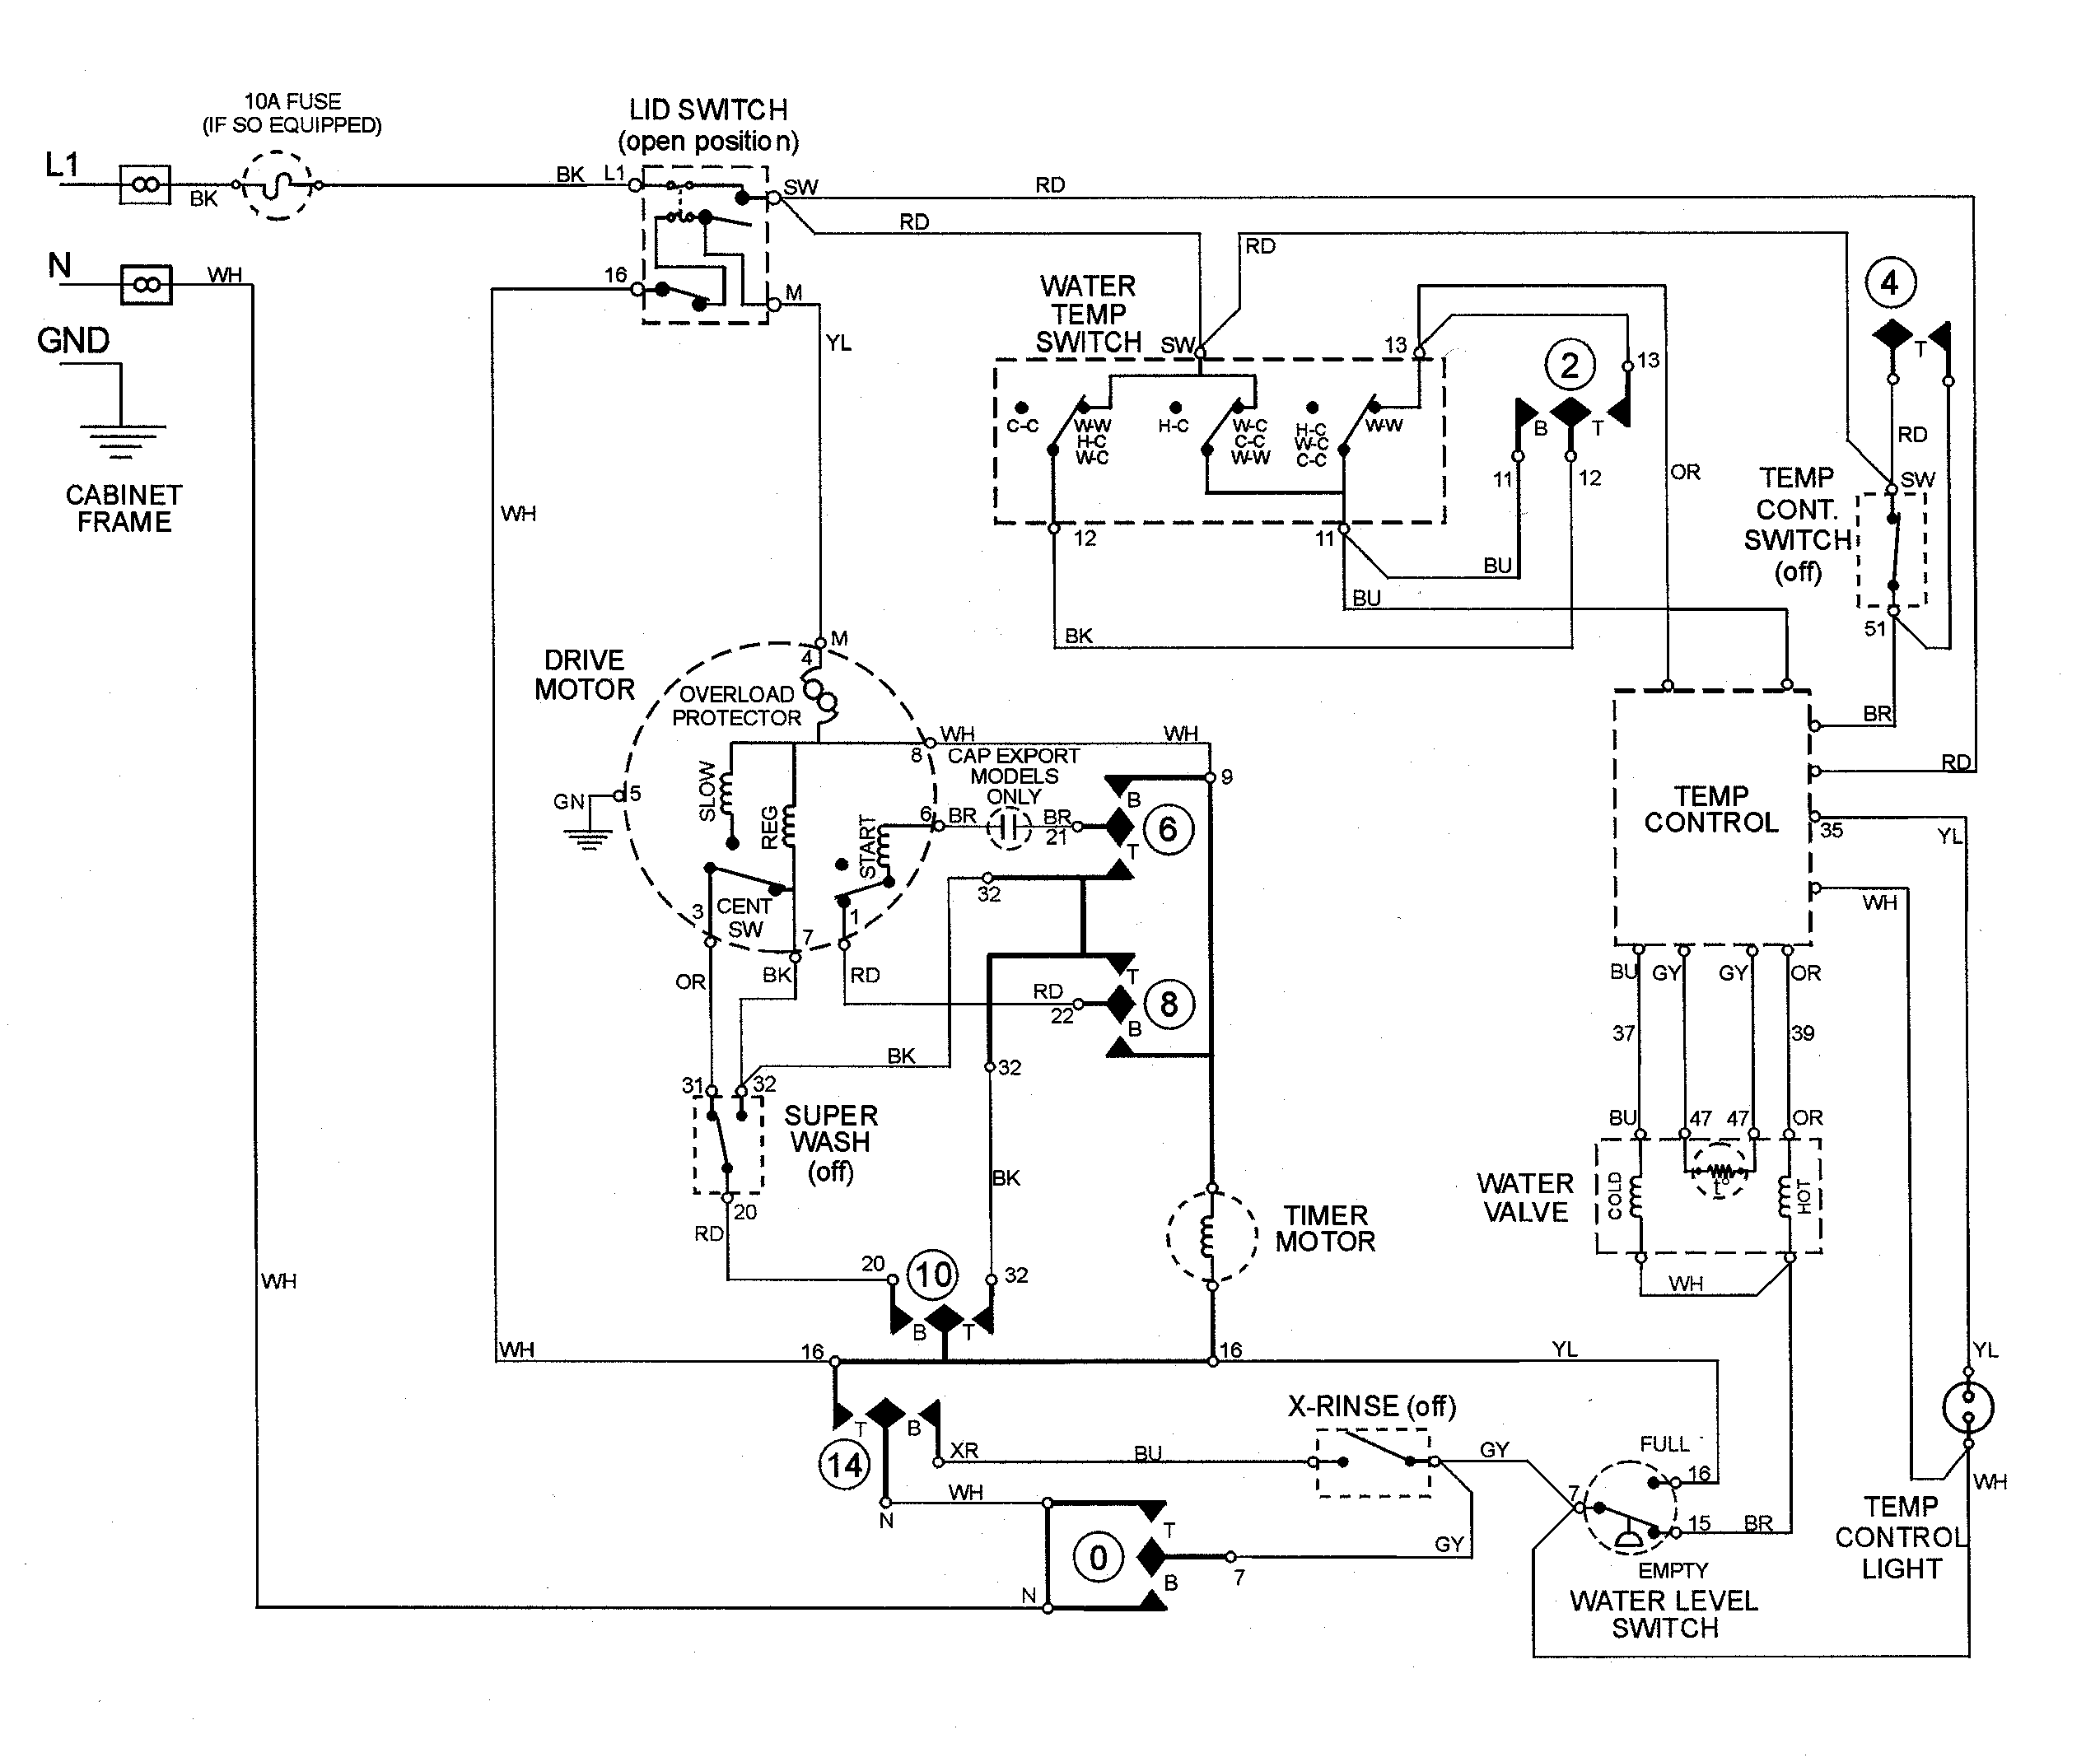 ge washing machine motor wiring diagram ge wiring diagram and window air conditioner wiring diagram ge wiring diagram [ 2550 x 2140 Pixel ]